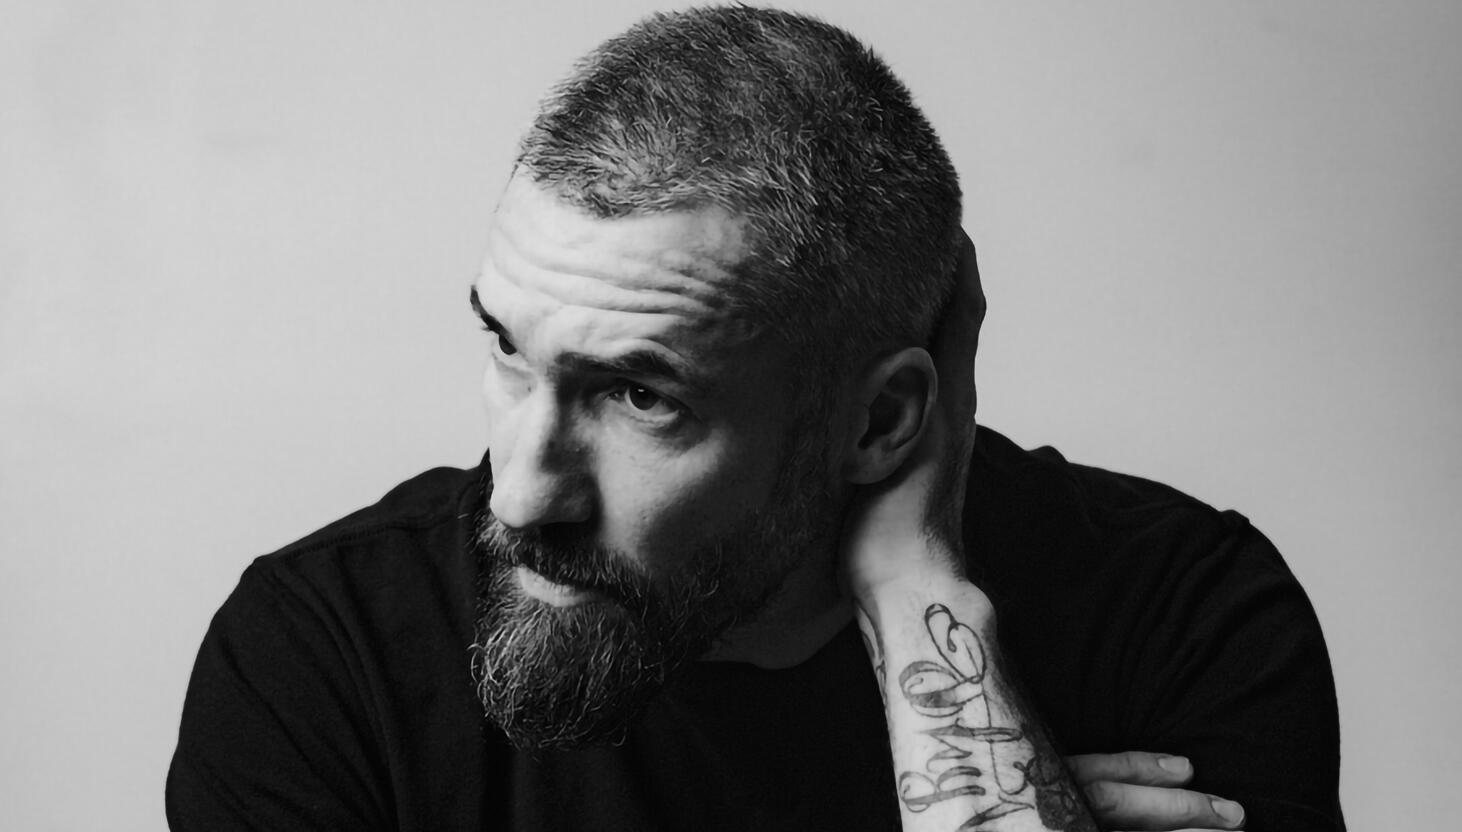 Sevendust's Clint Lowery Saved His Best Work For His Solo Debut